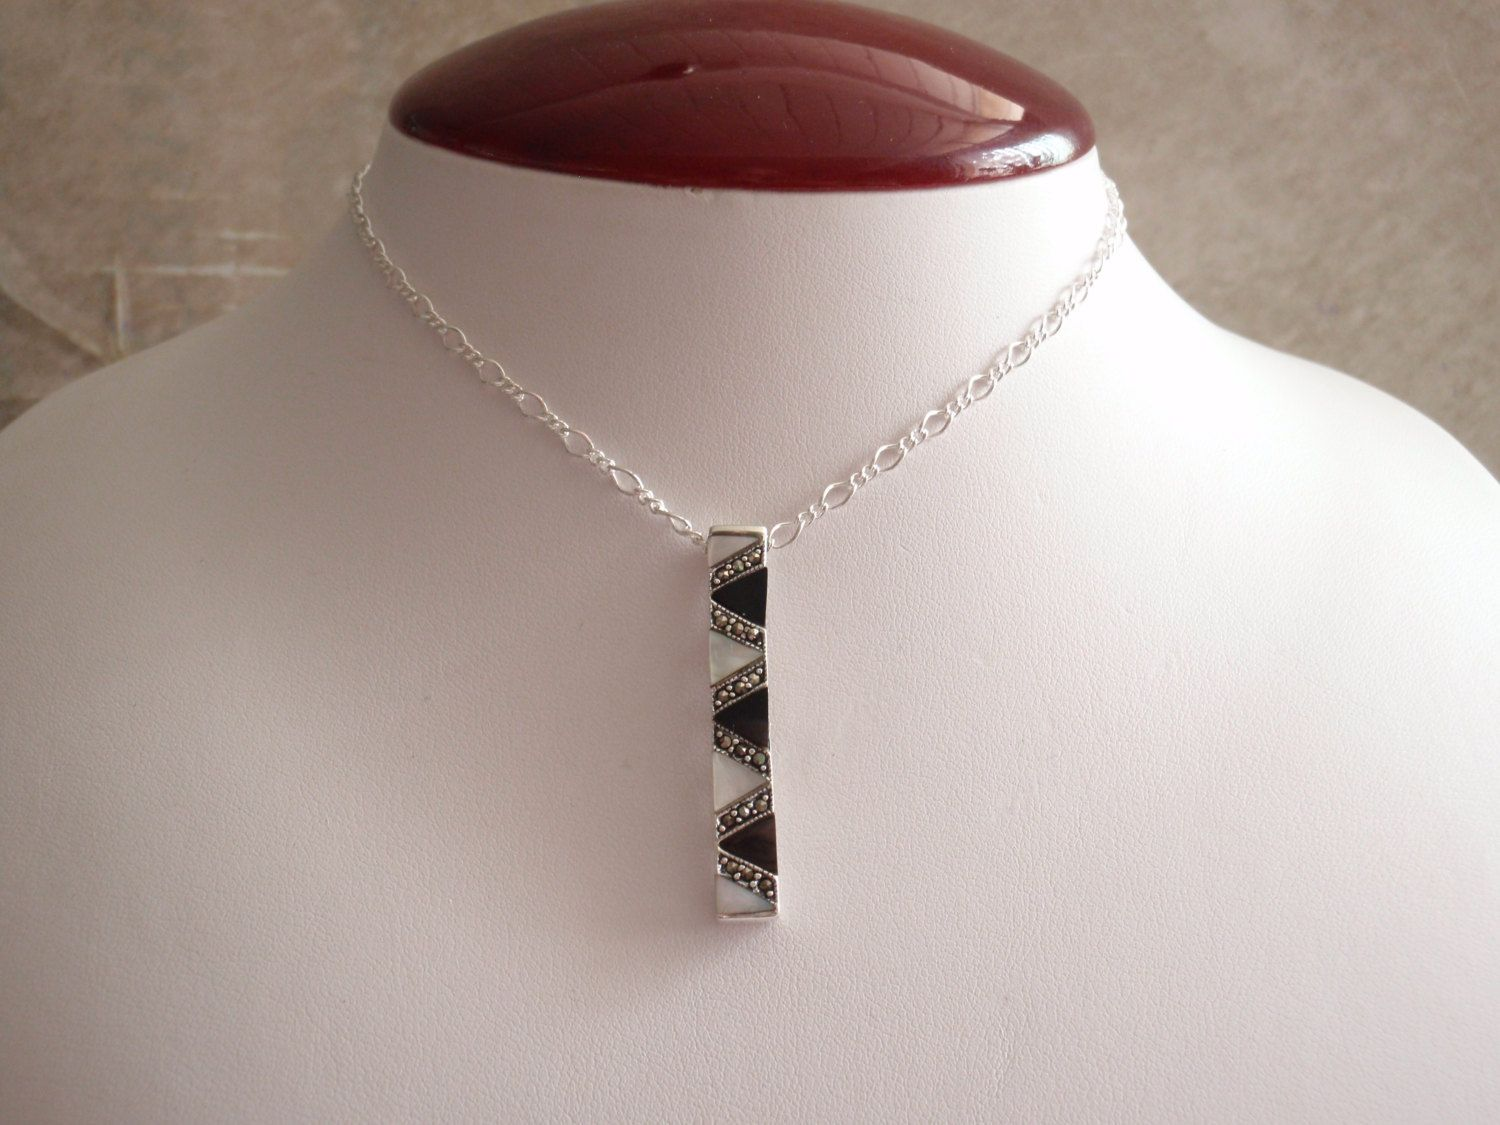 Black White Necklace MOP Onyx Sterling Silver Vertical Bar Marcasite Zig Zag Triangles Vintage CW0199 by cutterstone on Etsy #verticalbarnecklace #sterlingsilver #blackonyx #zigzag #vintage